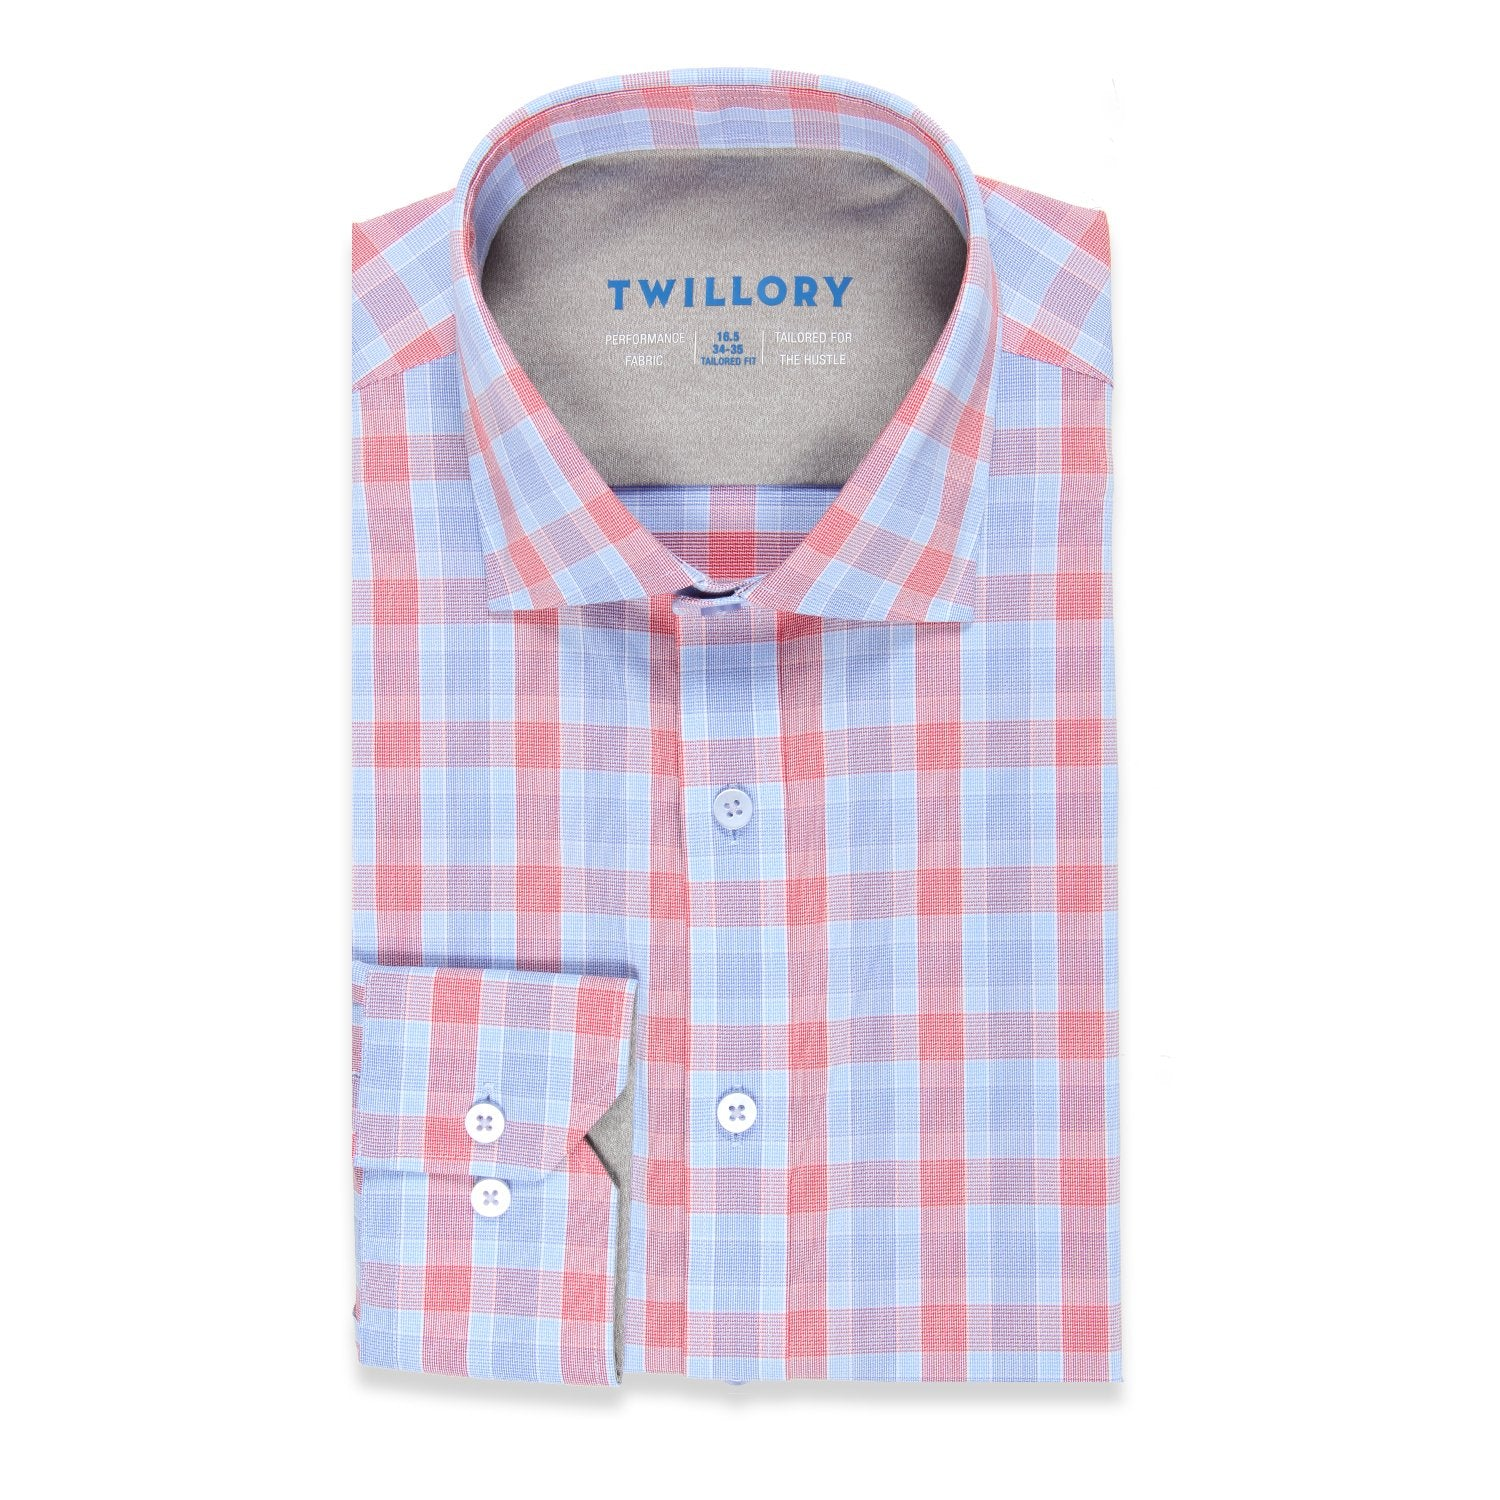 Twillory Creator Performance Plaid Tailored Button Down